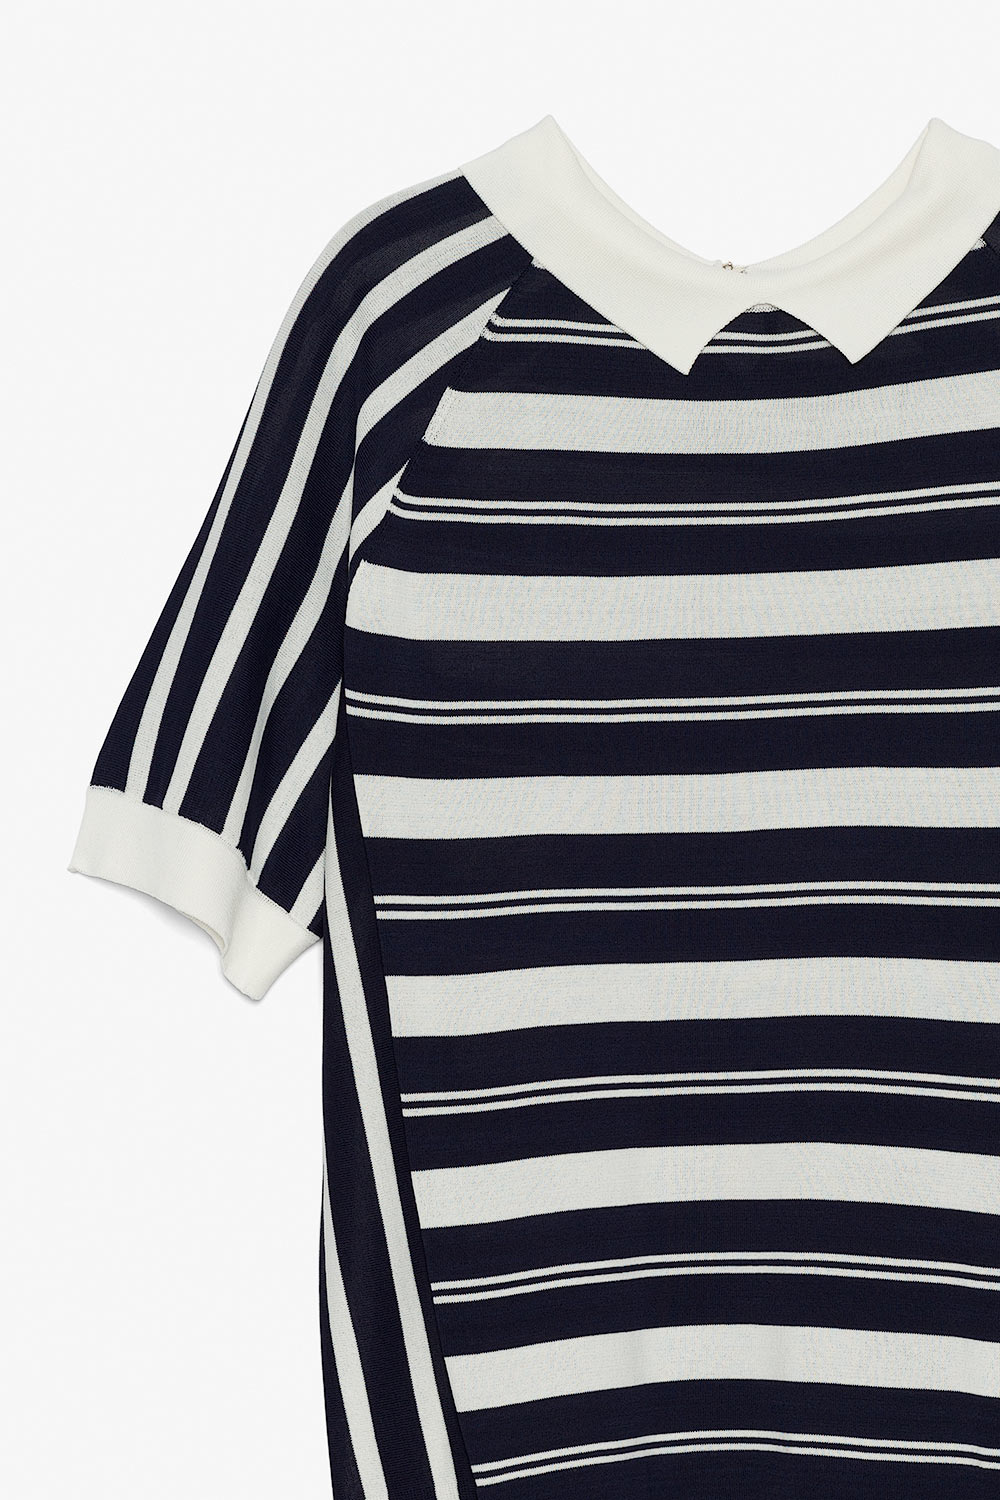 Retro Striped Collared Shirt